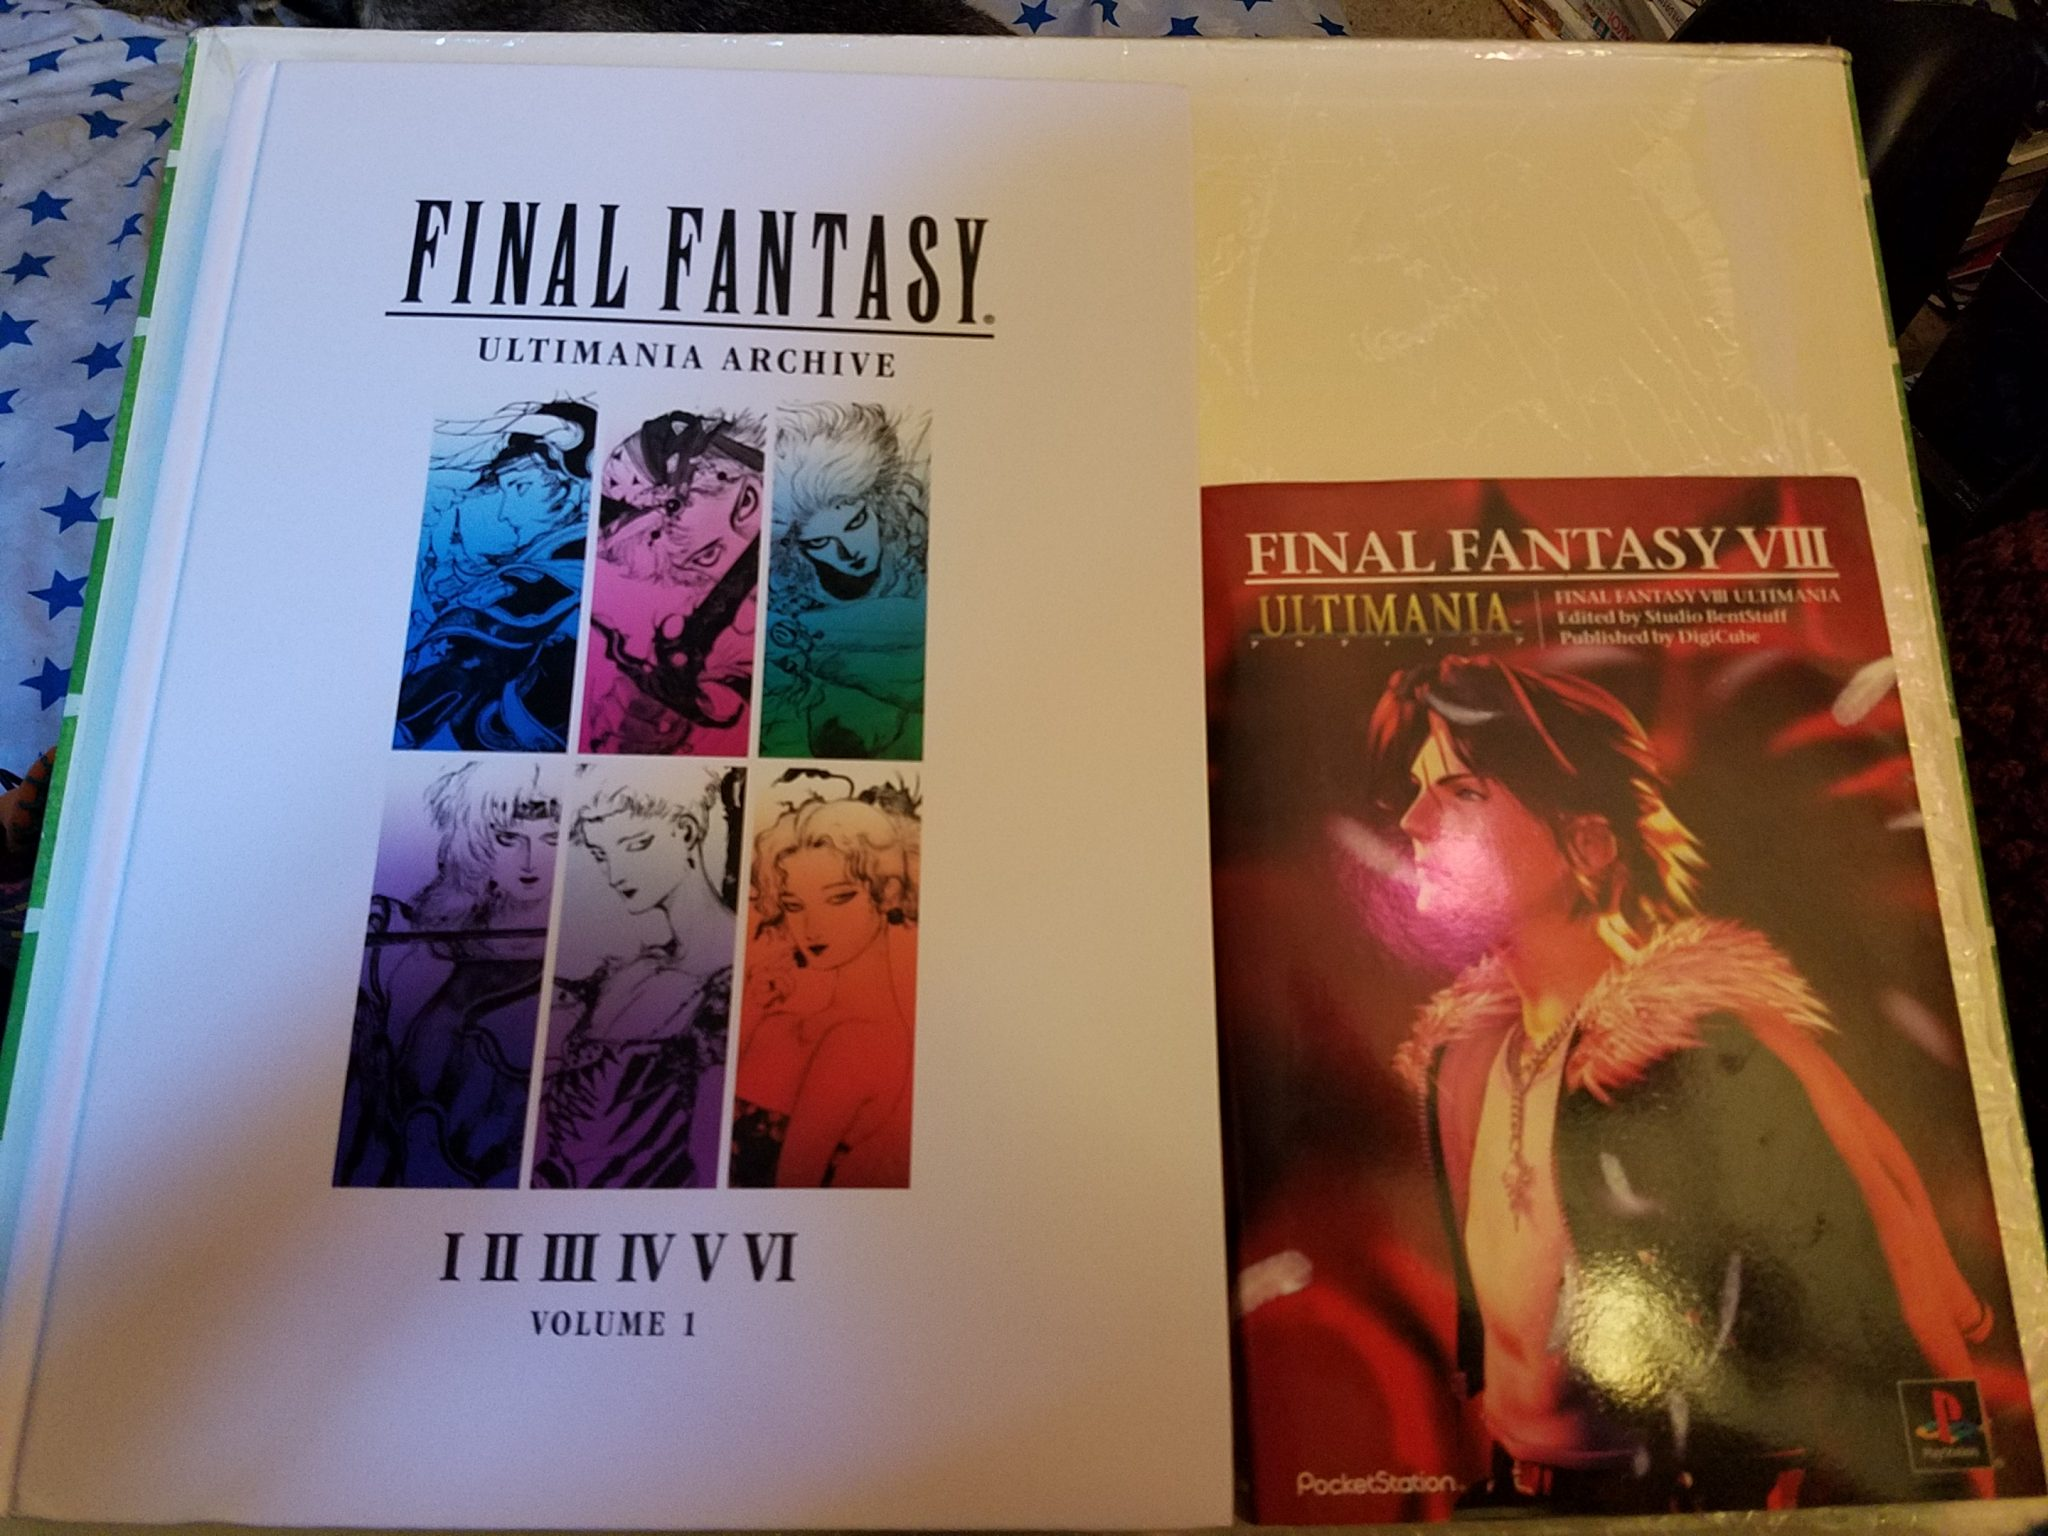 Final Fantasy Ultimania Archive 1 vs VII Ultimania